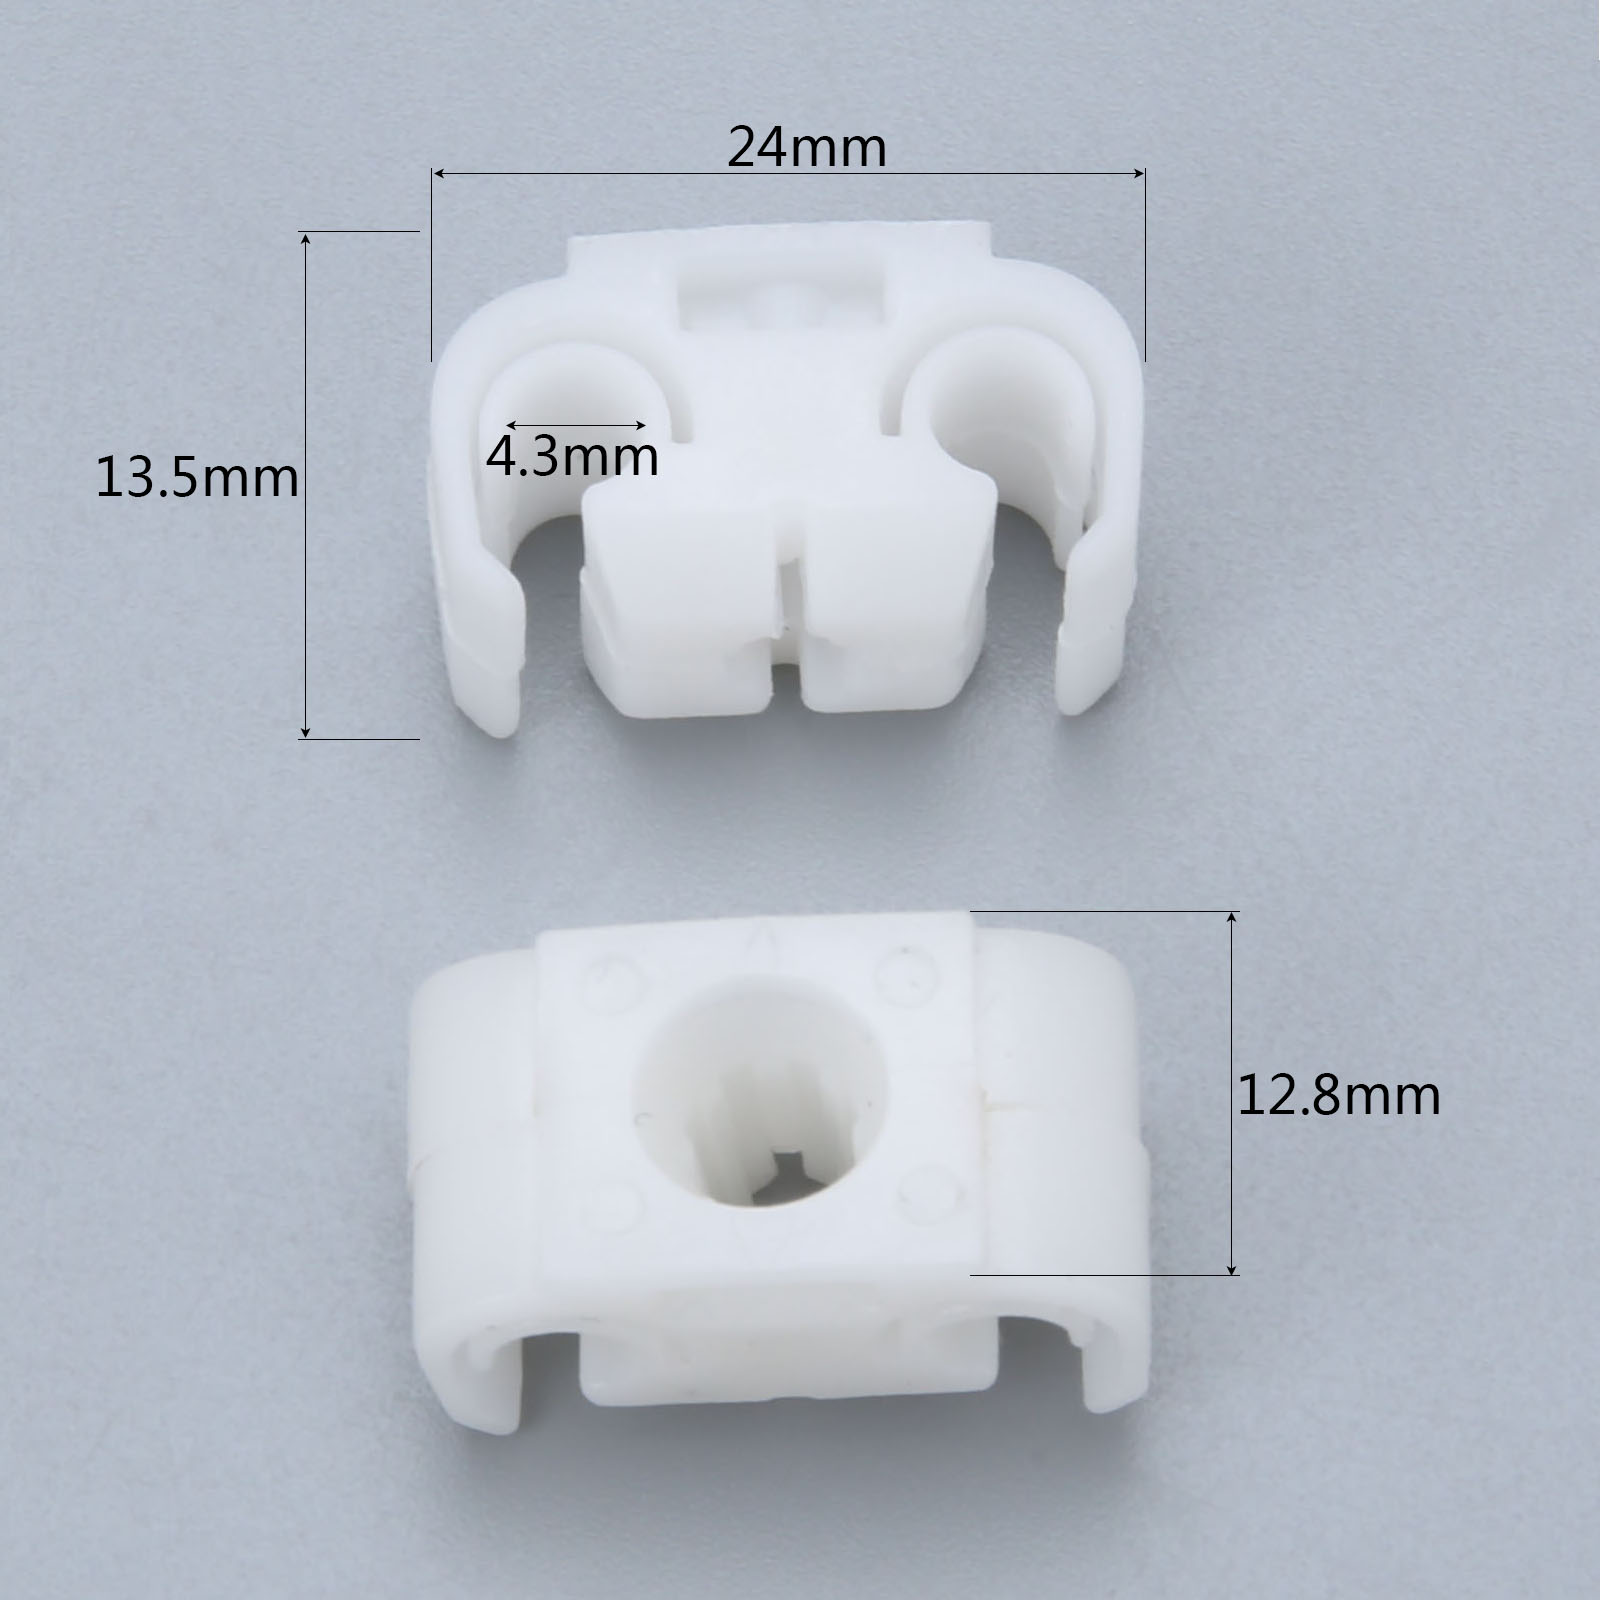 Image 2 - 811611797 20Pcs Brake Cable Bracket Pipe Body Retaining Clip Holder  For Golf Je tta Passat For Audi A4 A6 For Skoda For Seat-in Auto Fastener & Clip from Automobiles & Motorcycles